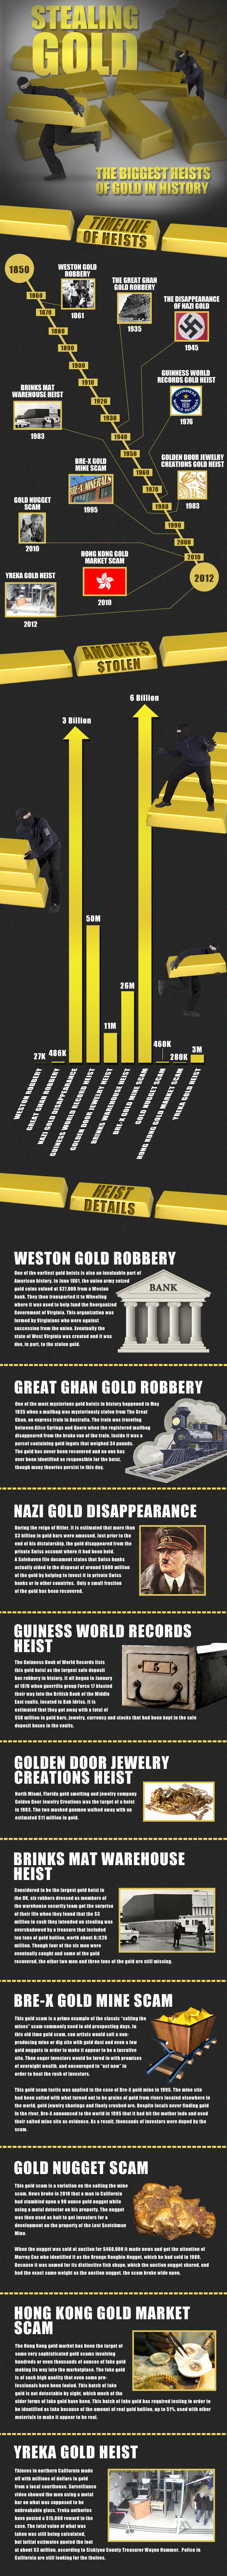 Gold Robberies